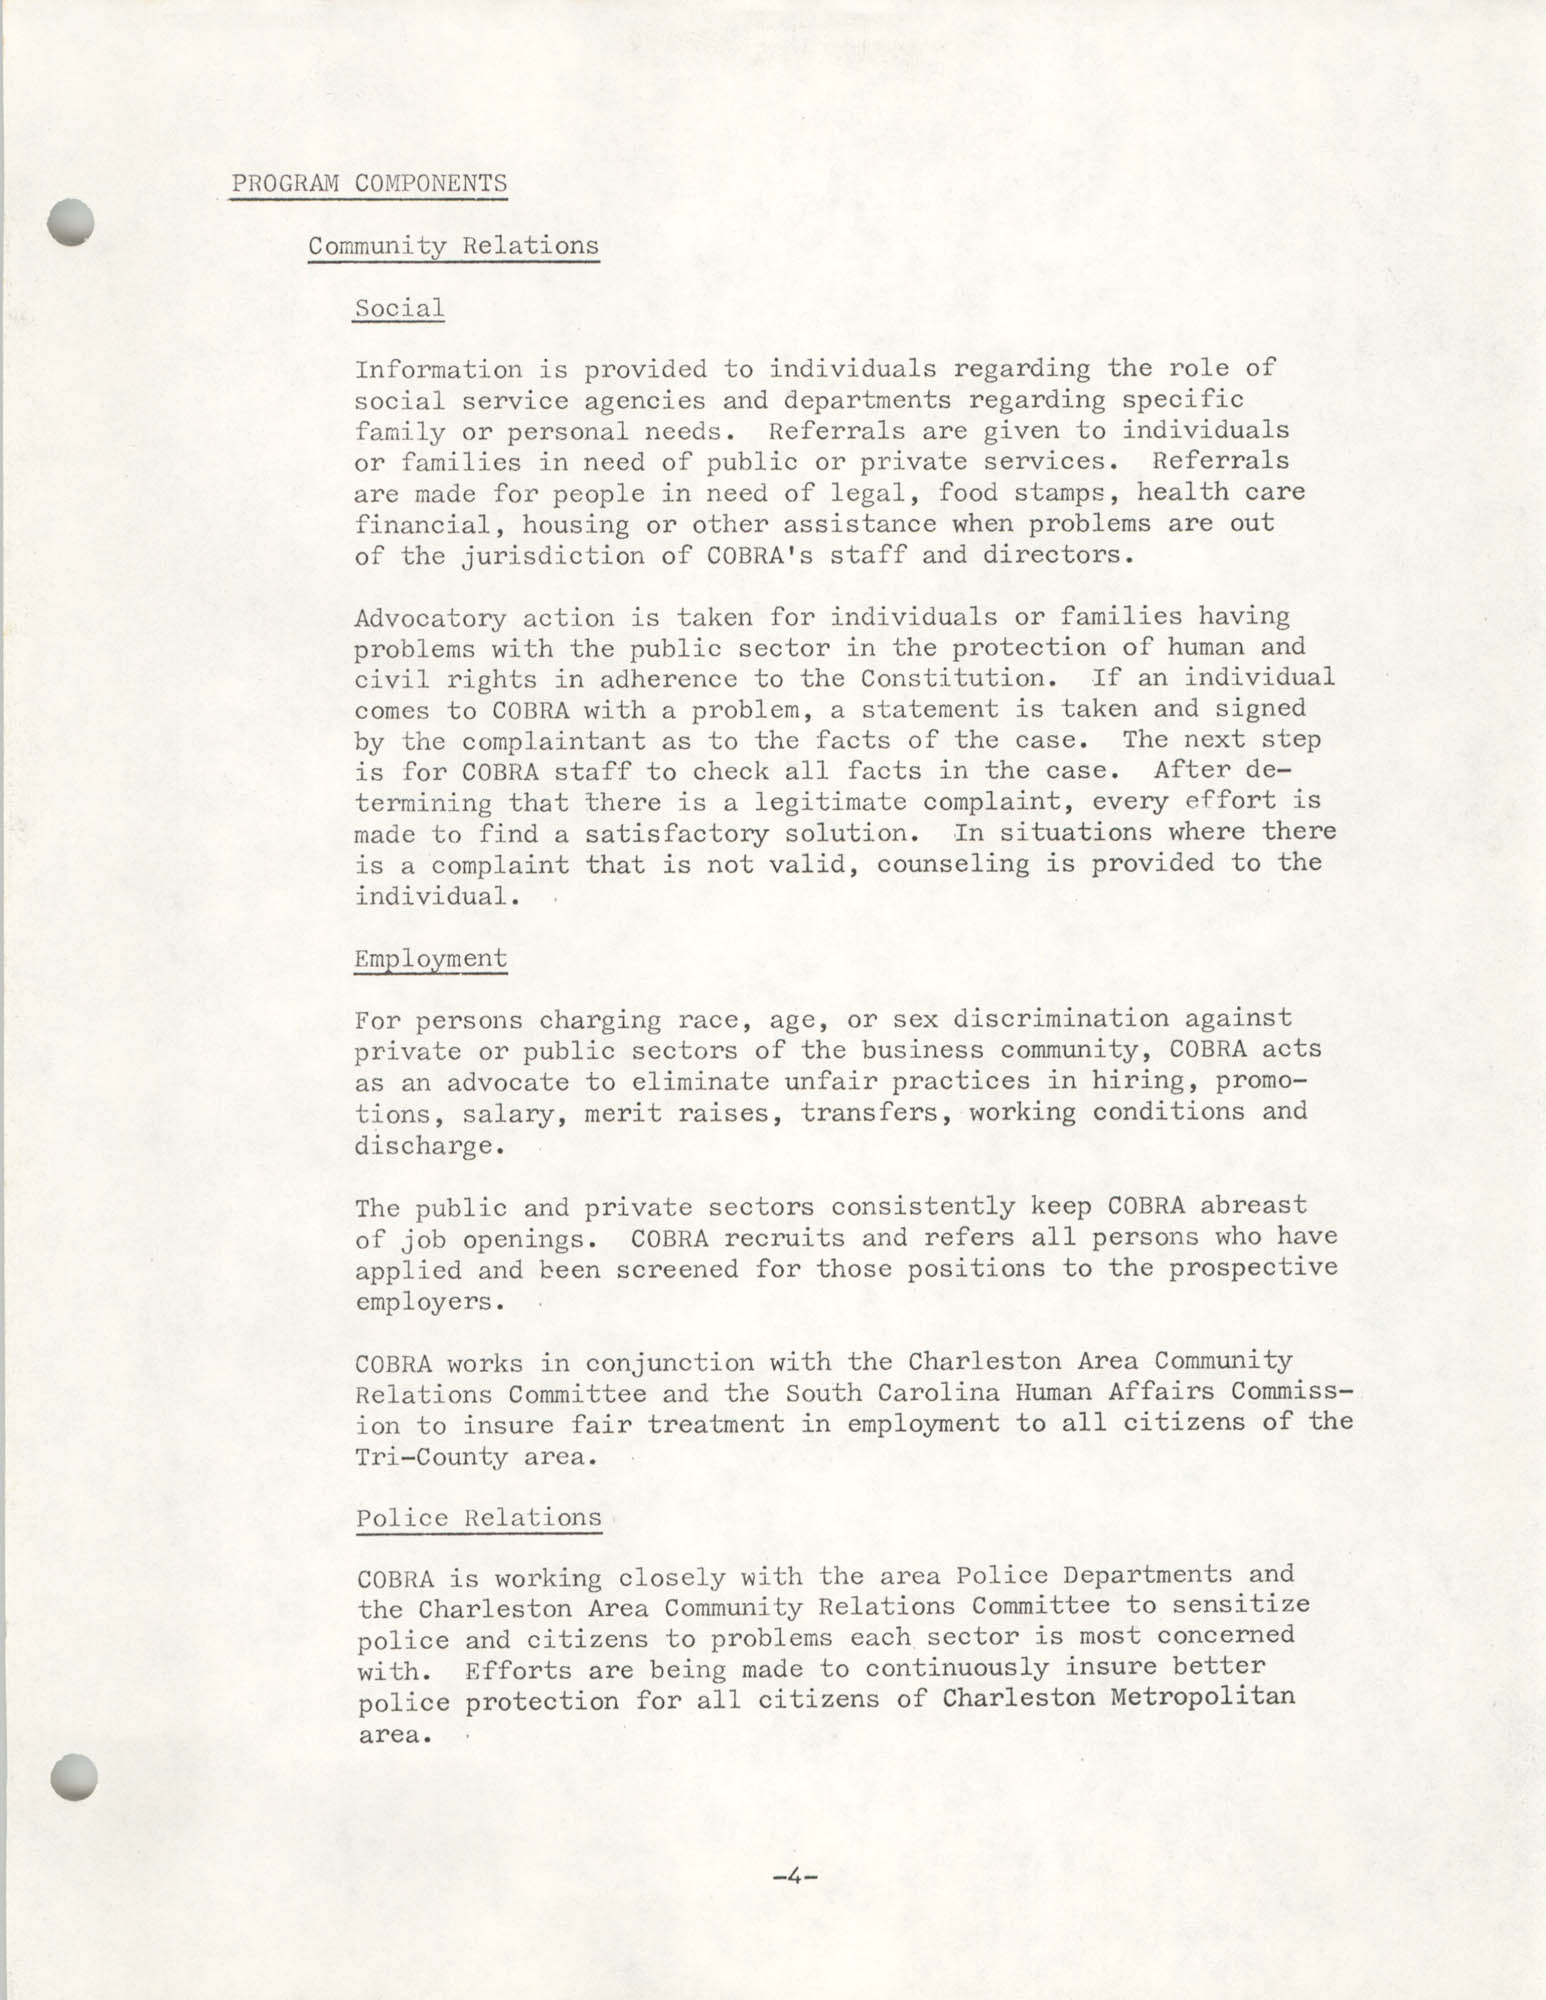 Organizational Information for COBRA, Page 4